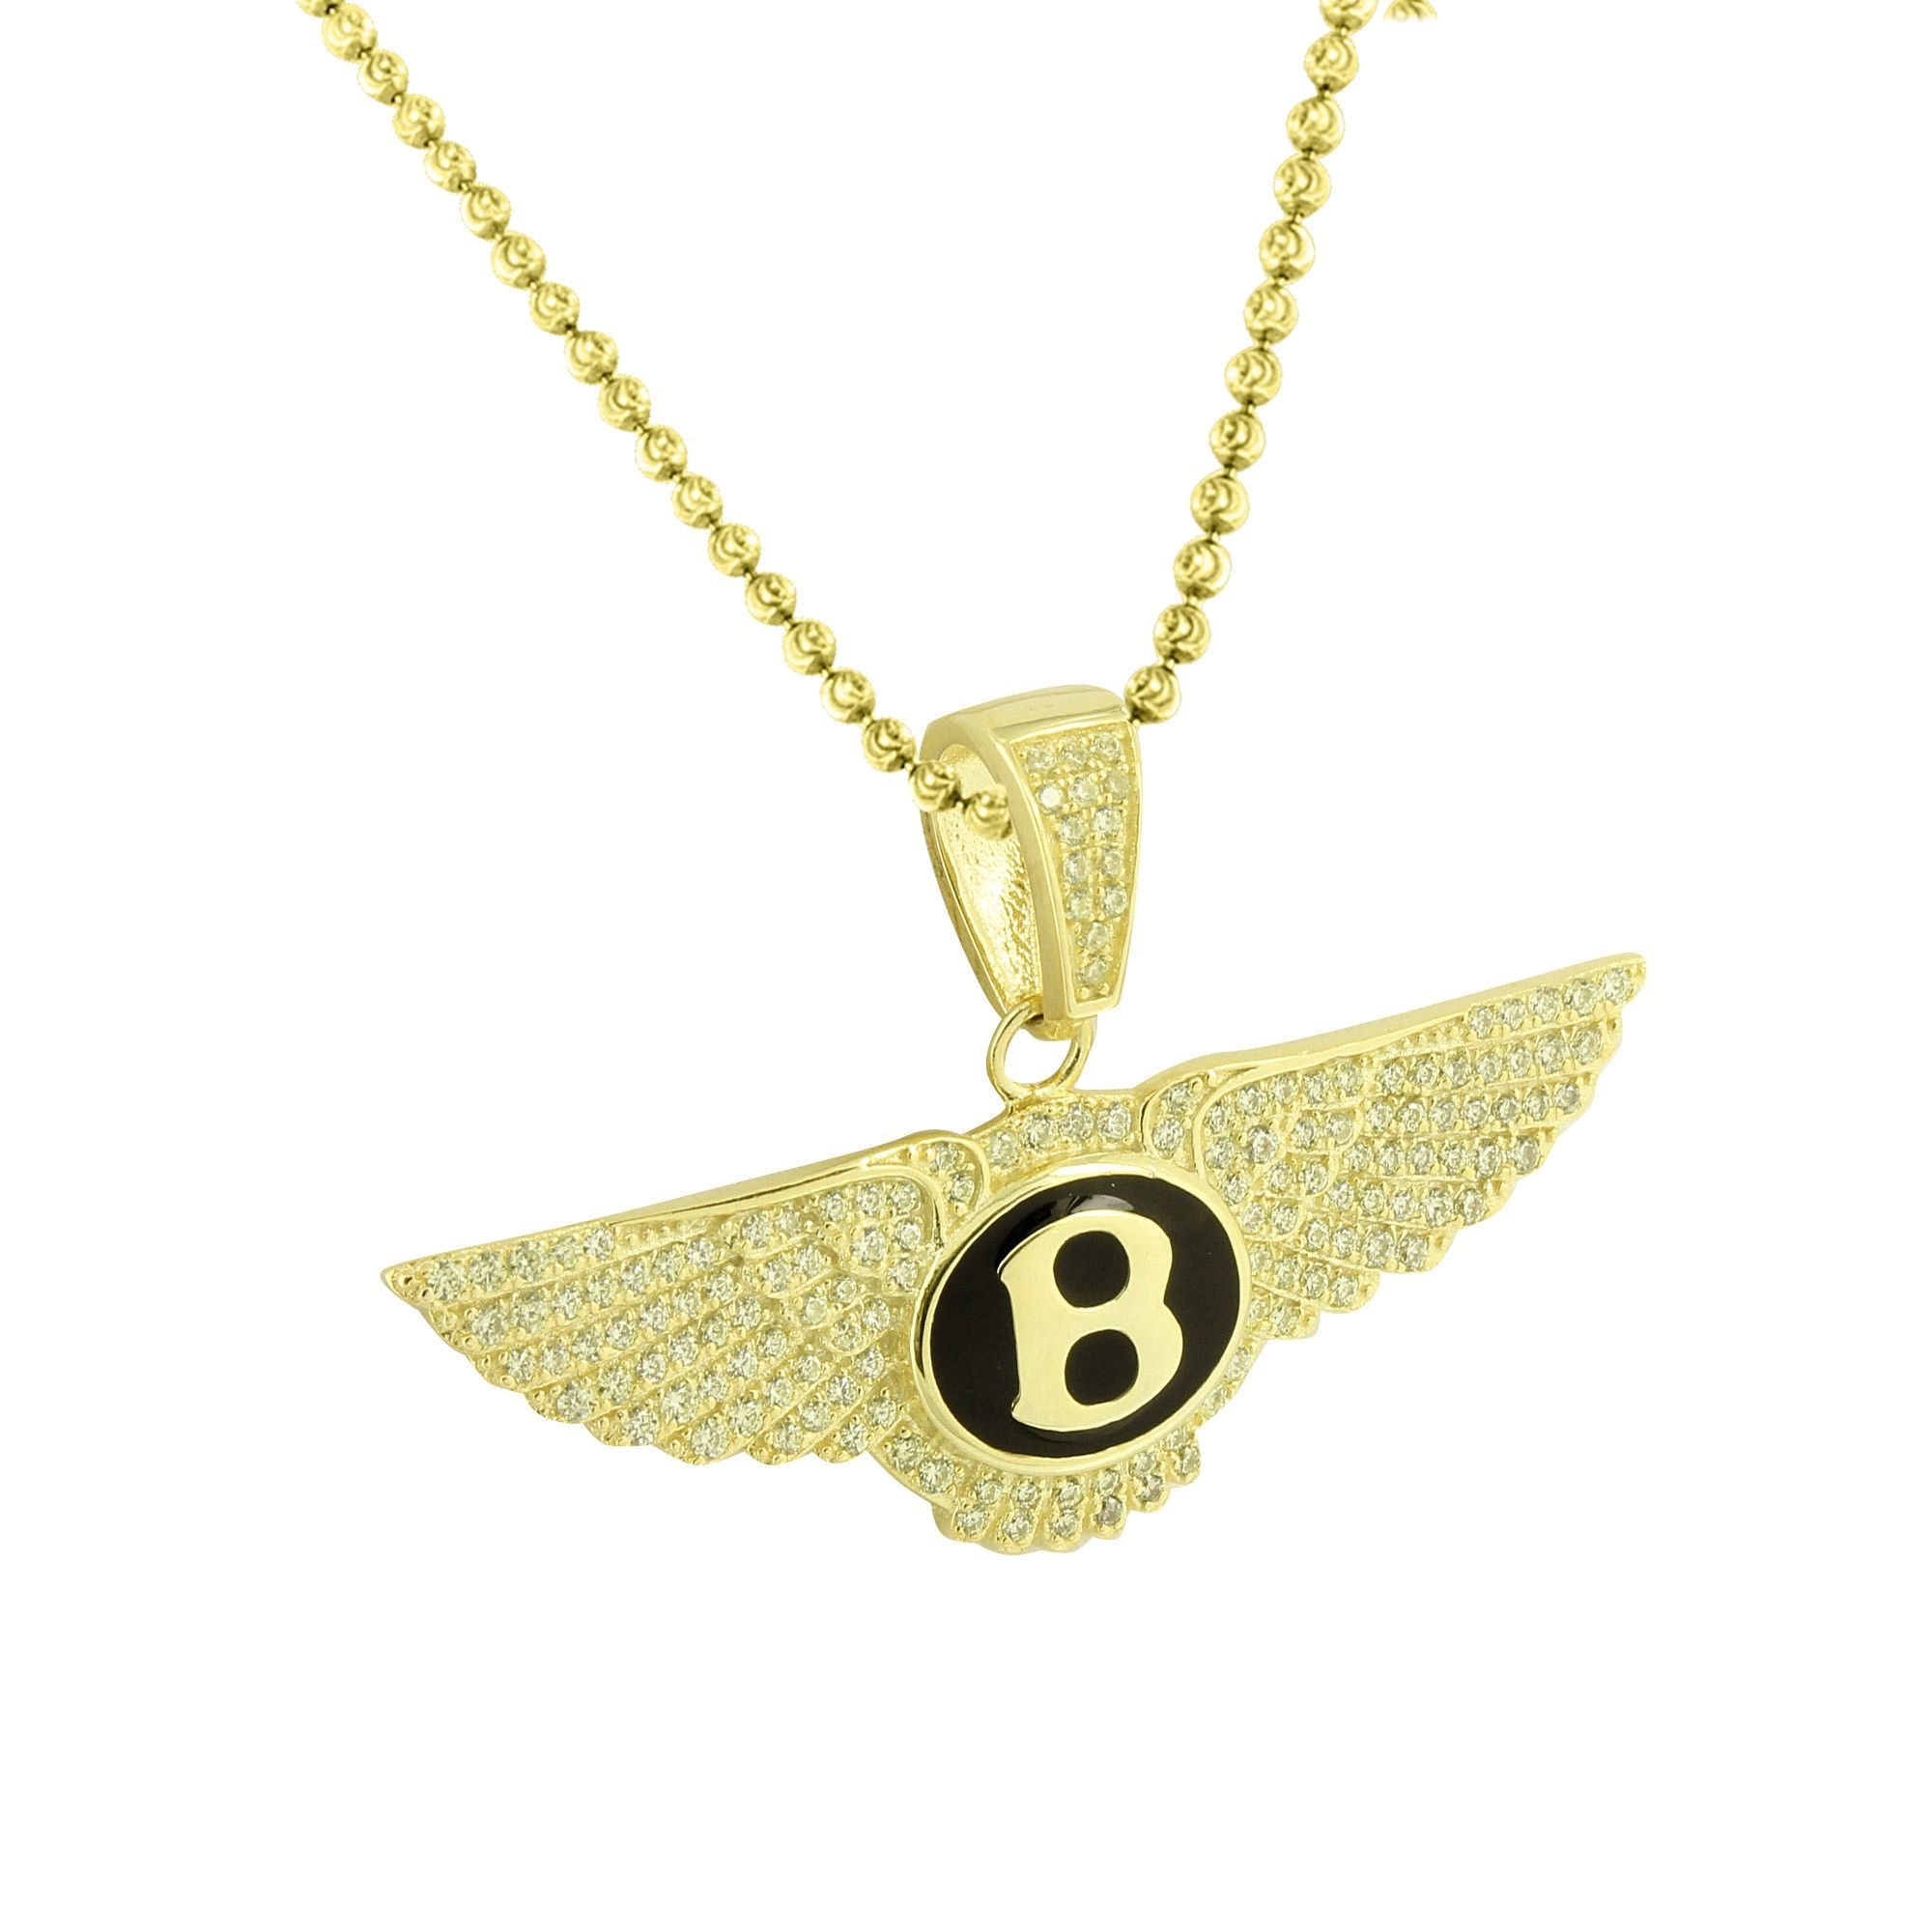 2539a46df52 Bentley Car Logo Pendant Chain Gold On Sterling Silver Yellow ...